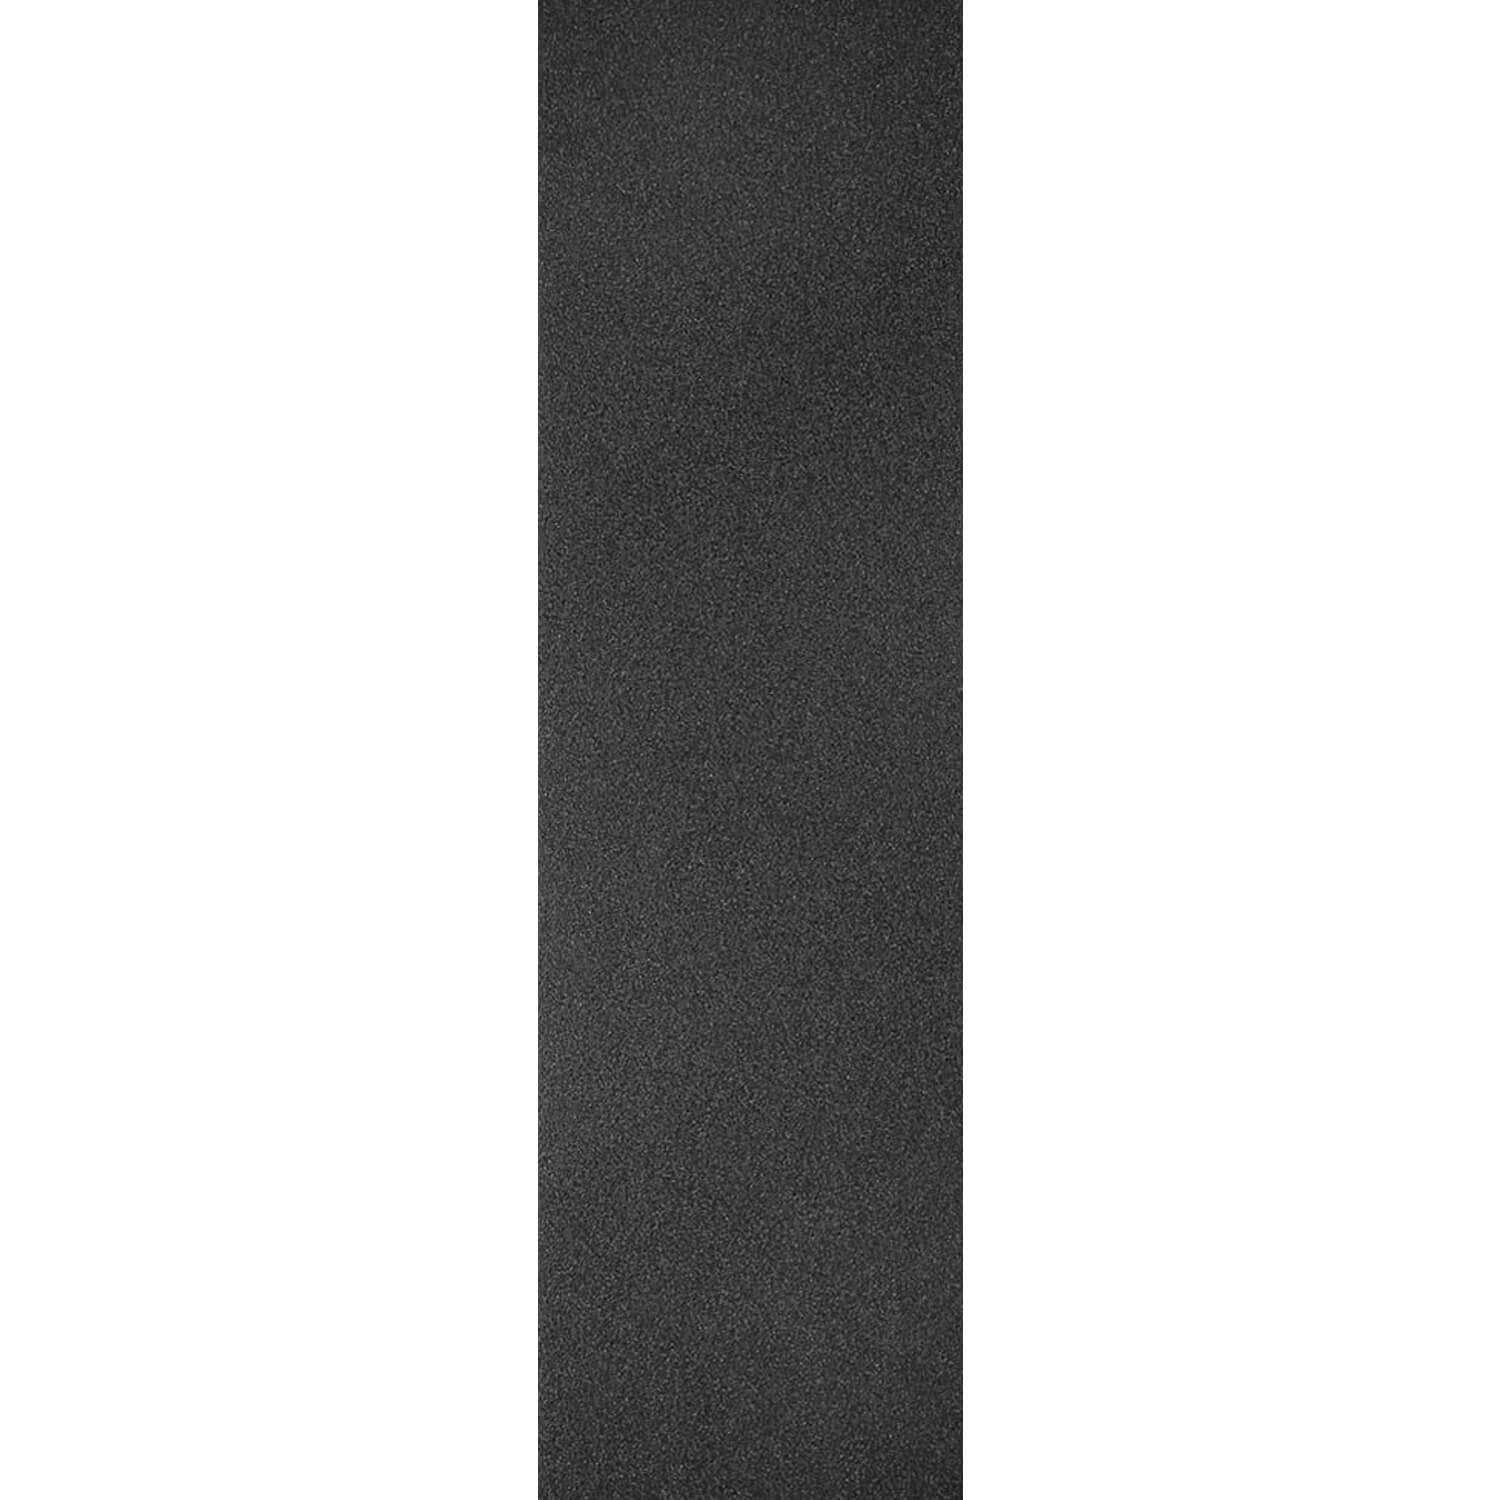 Bundle of 2 Items World Industries Skateboards Pods Skateboard Deck 8.25 x 33 with Mob Grip Perforated Black Griptape